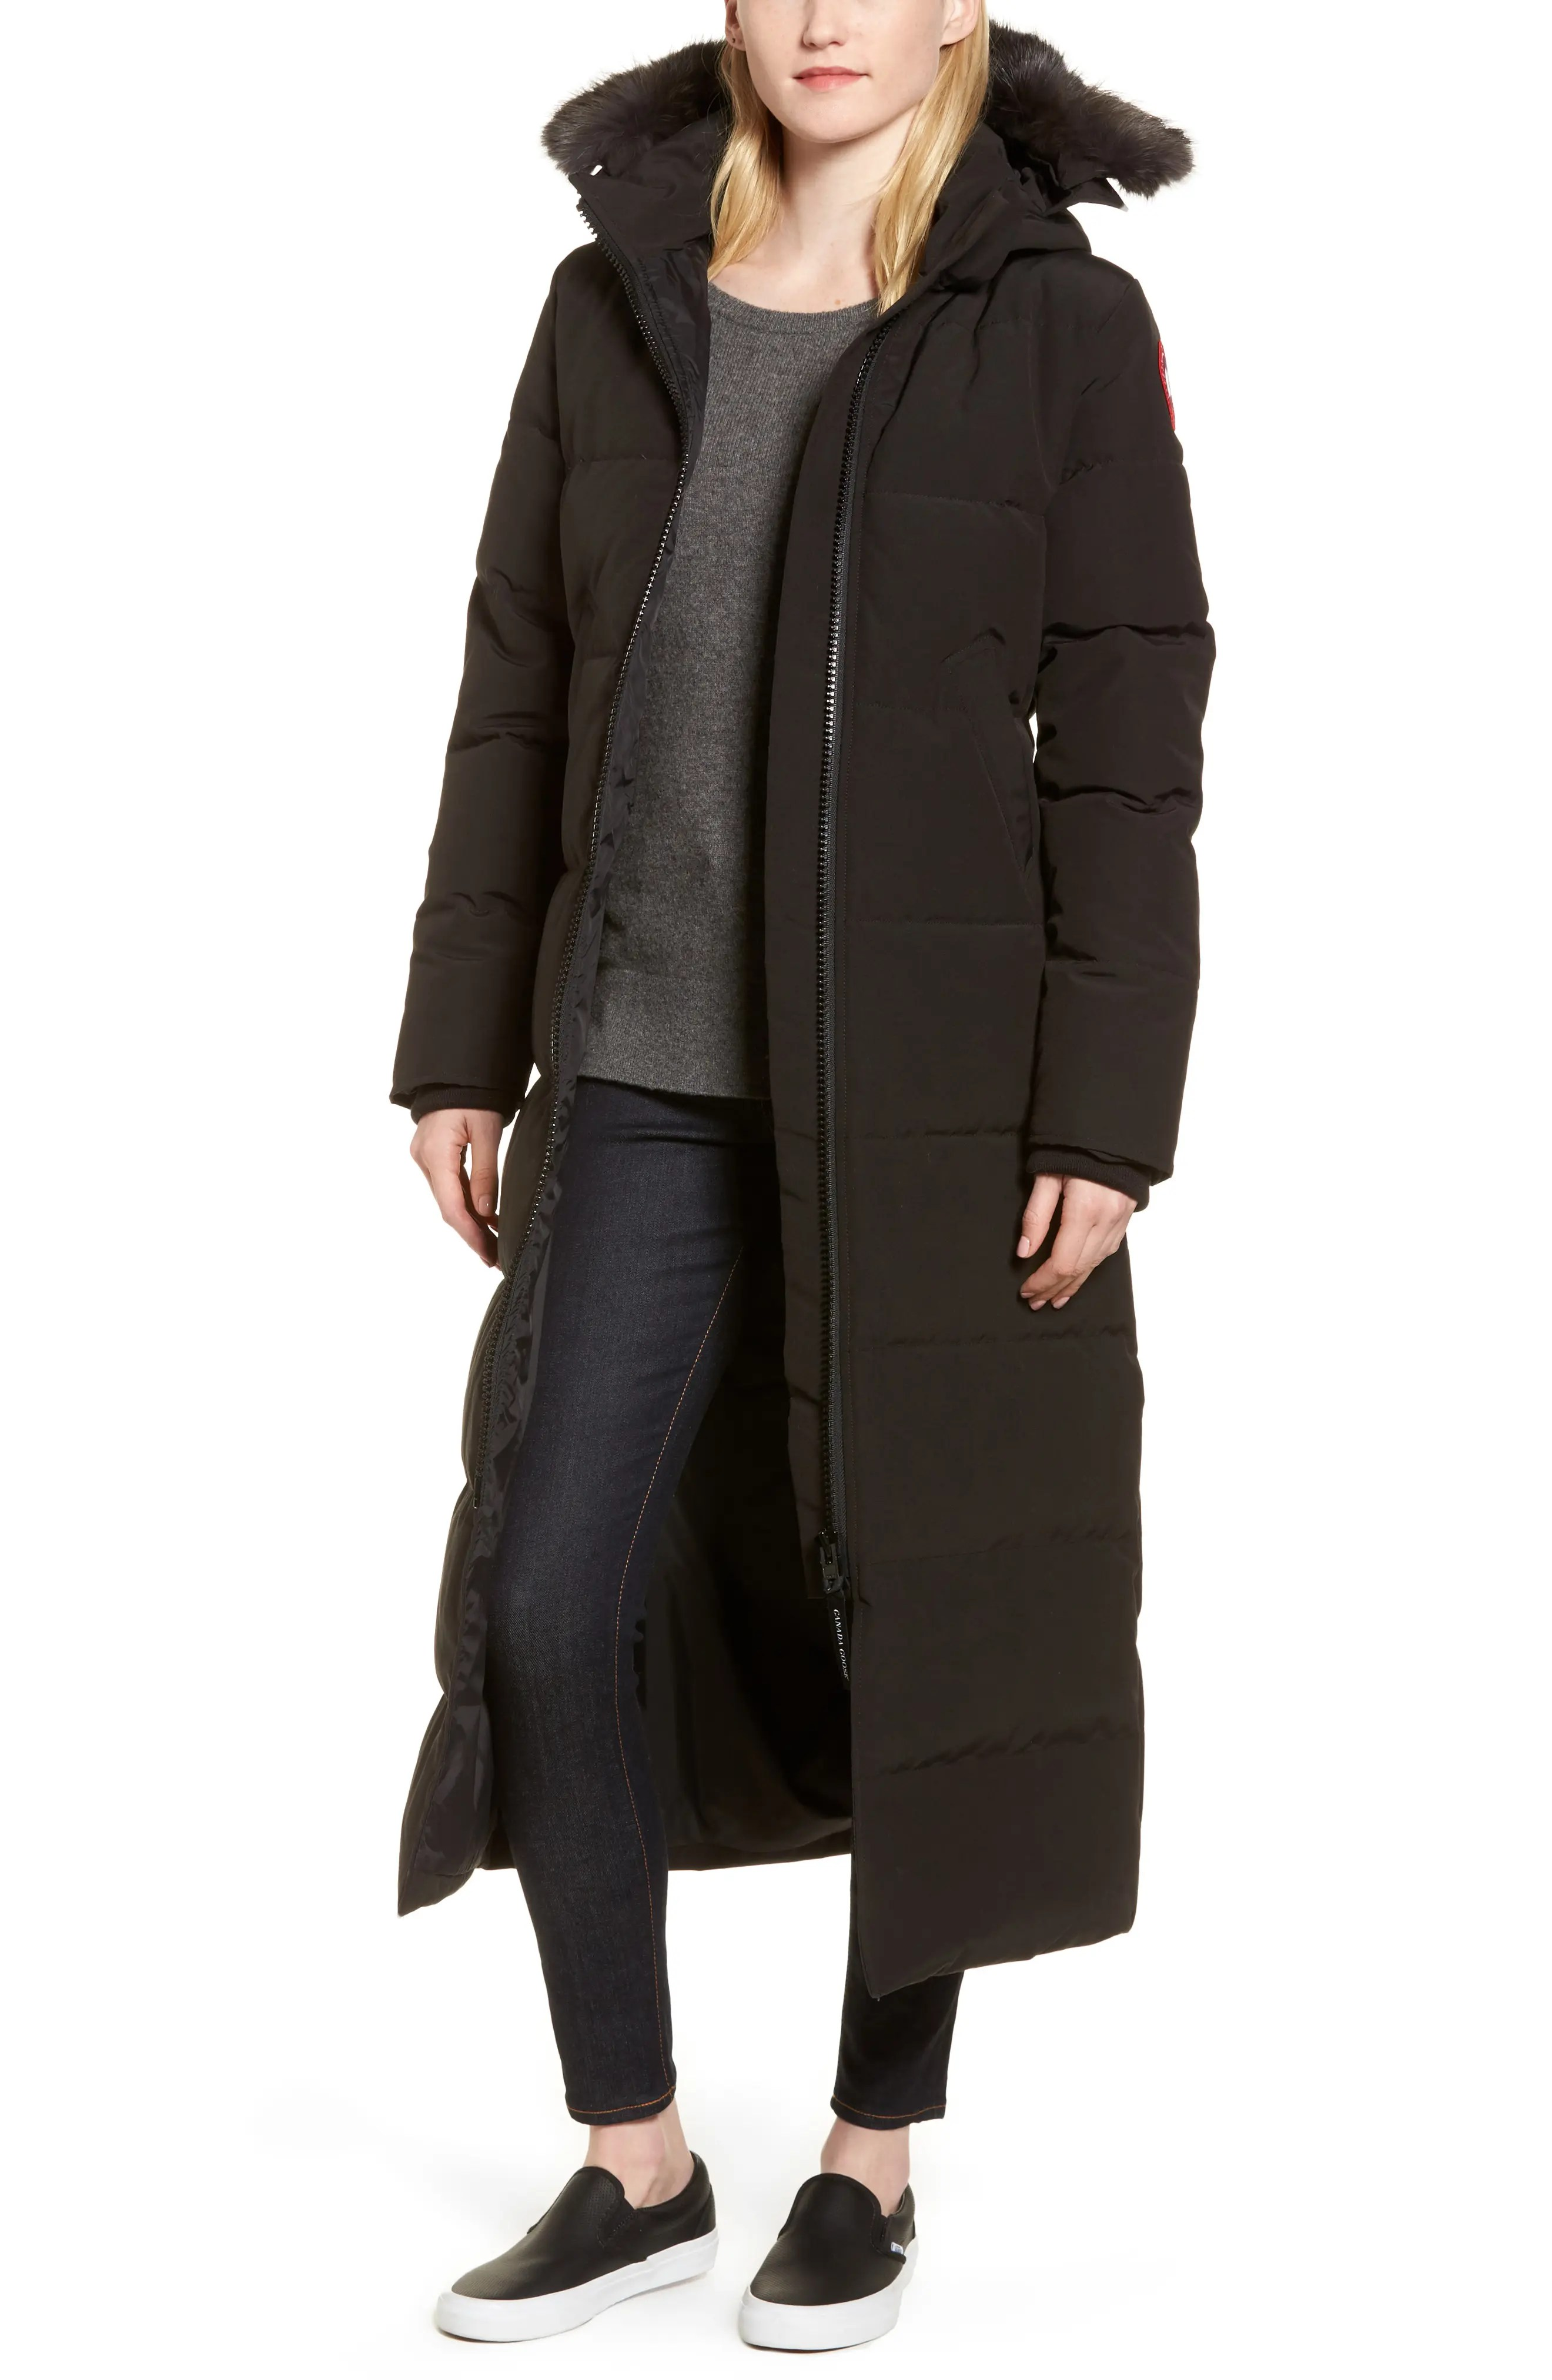 Handson Kweekkas Serre Women S Long Coats Jackets Nordstrom